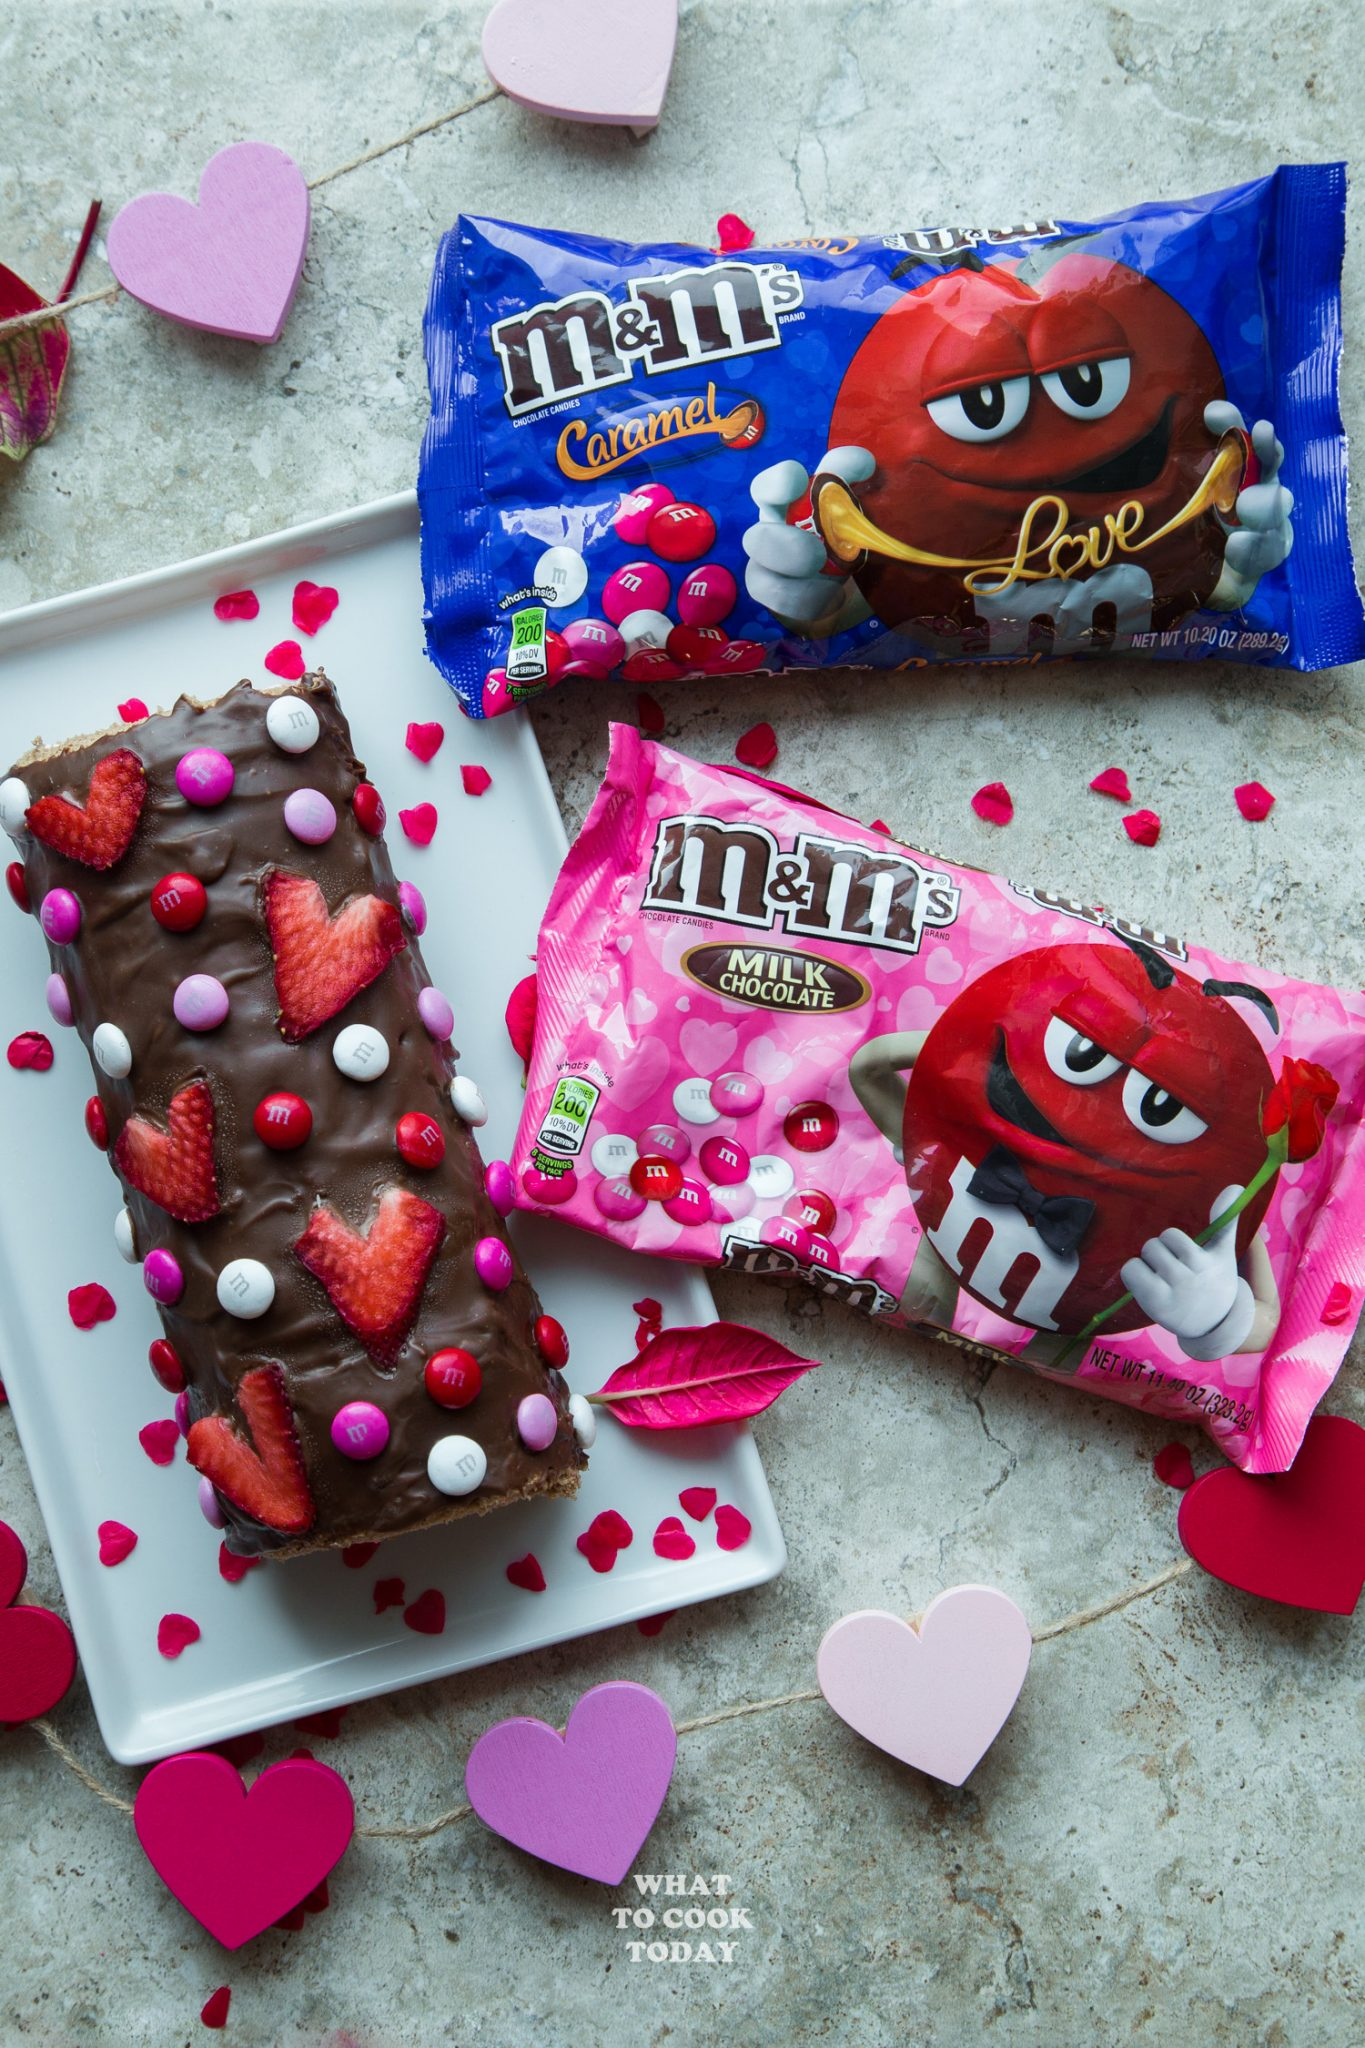 Strawberry Chocolate Swiss Roll #ad #sendsweetness #valentinesdaygift